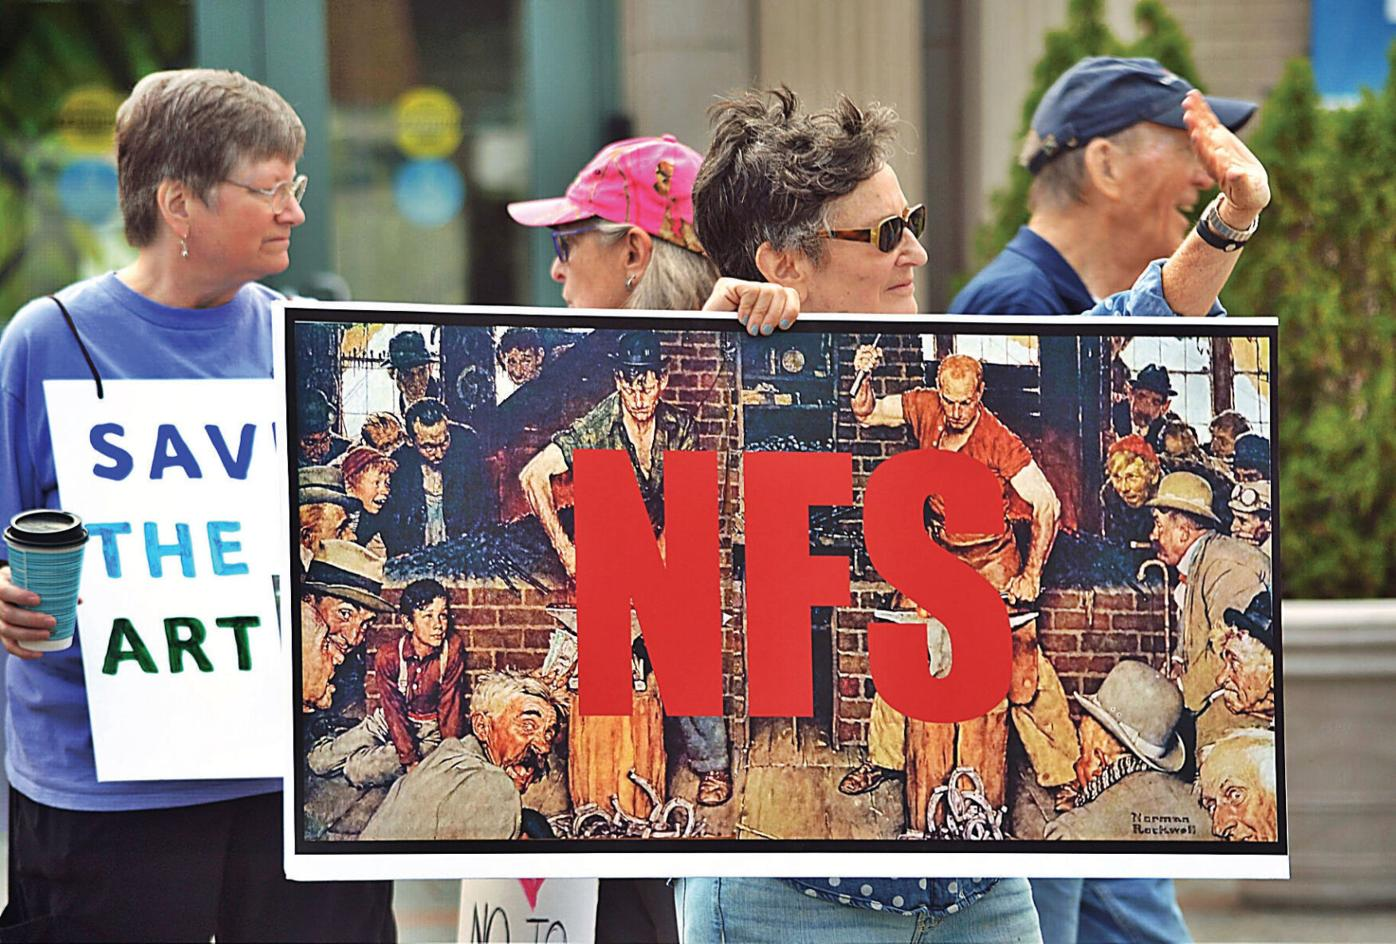 Protesters to Berkshire Museum: Art is 'Not For Sale'